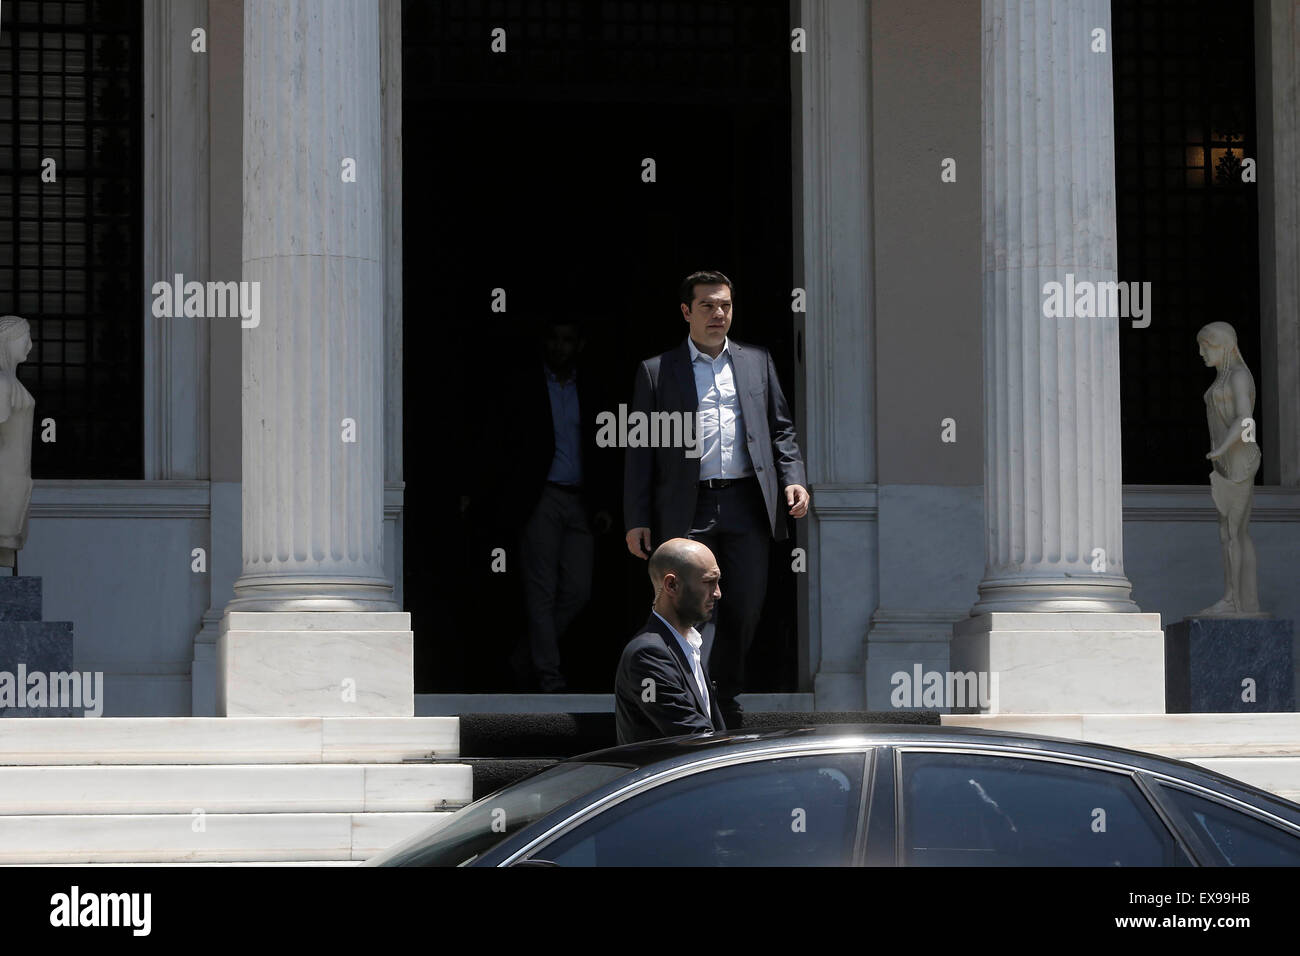 Athens, Greece. 9th July, 2015. Greek Prime Minister Alexis Tsipras leaves after a cabinet meeting in Athens, Greece, - Stock Image